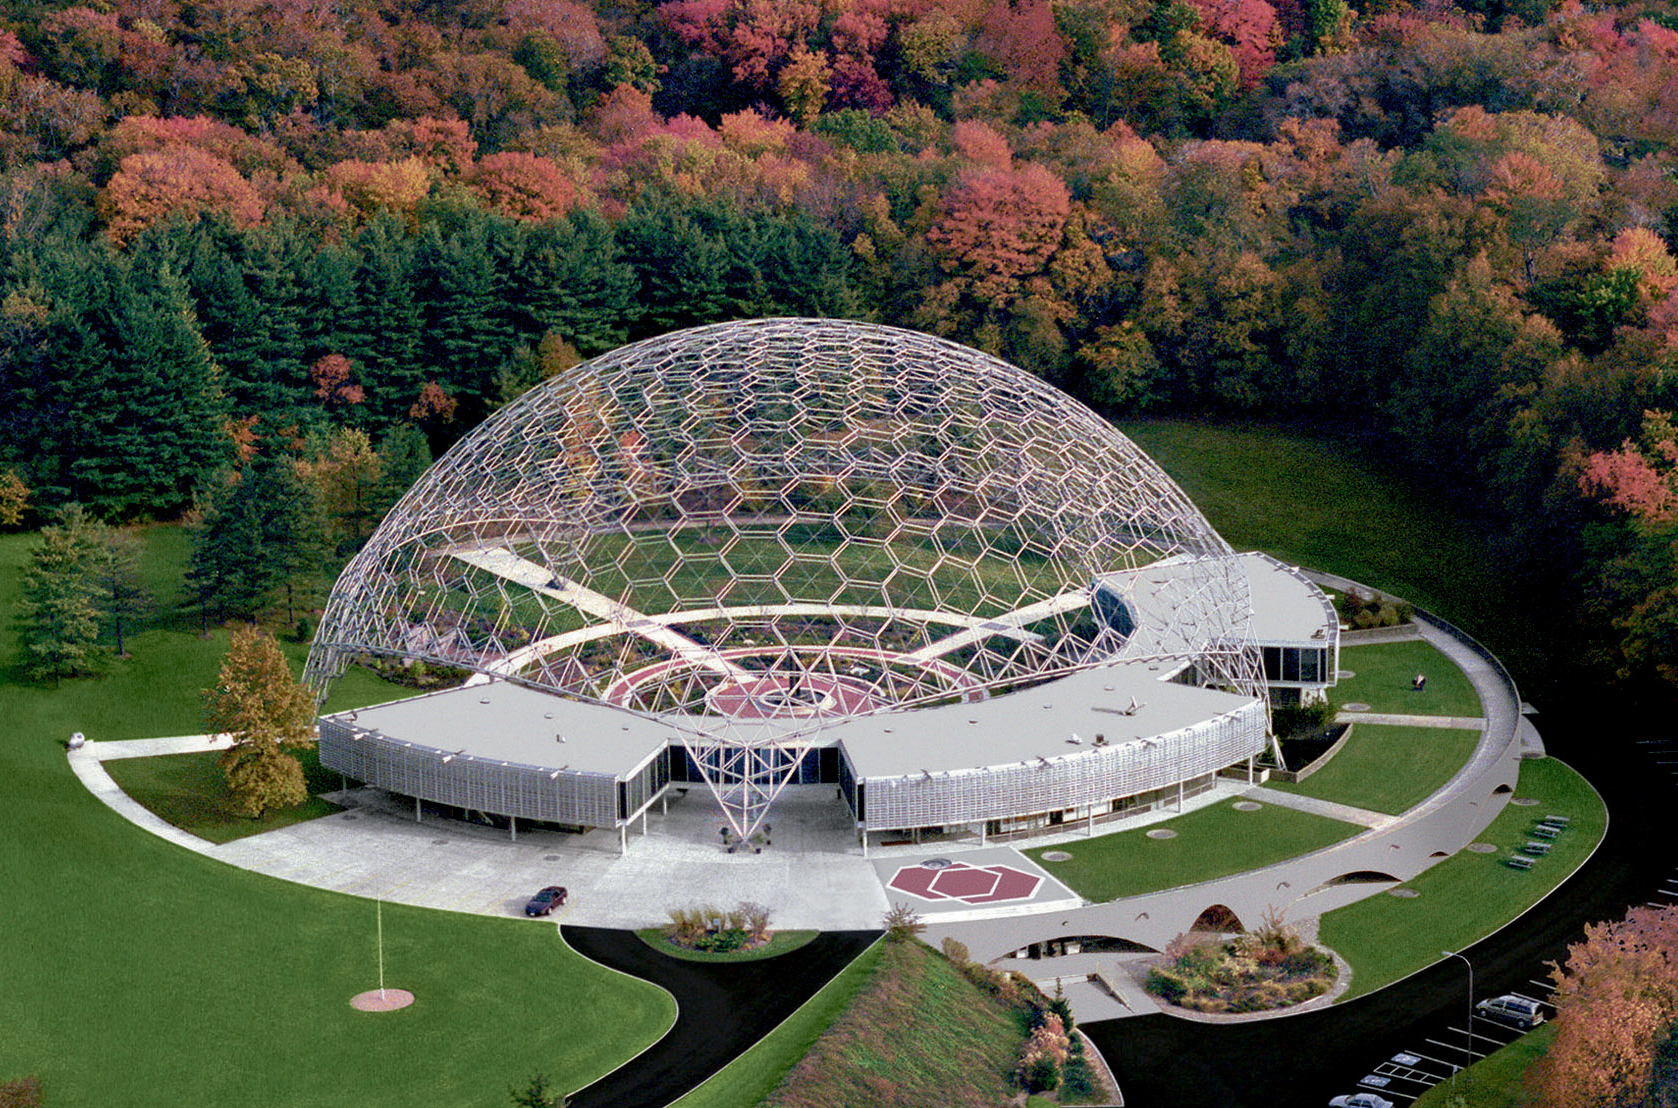 50 Geodesic Domes Around the World | ASM International Materials Park